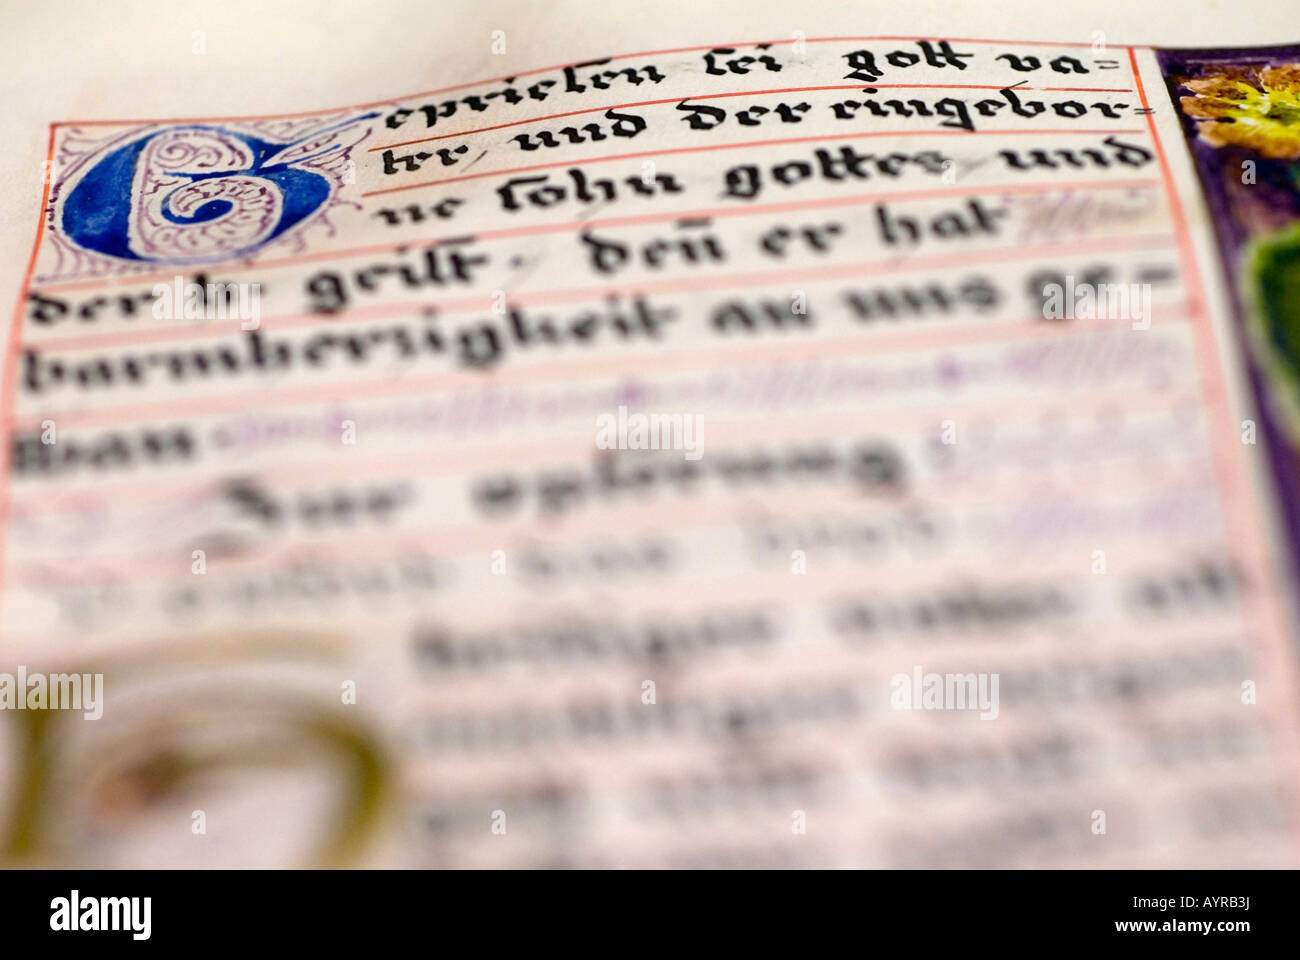 Historic, hand-written biblical script at a convent library, Germany - Stock Image